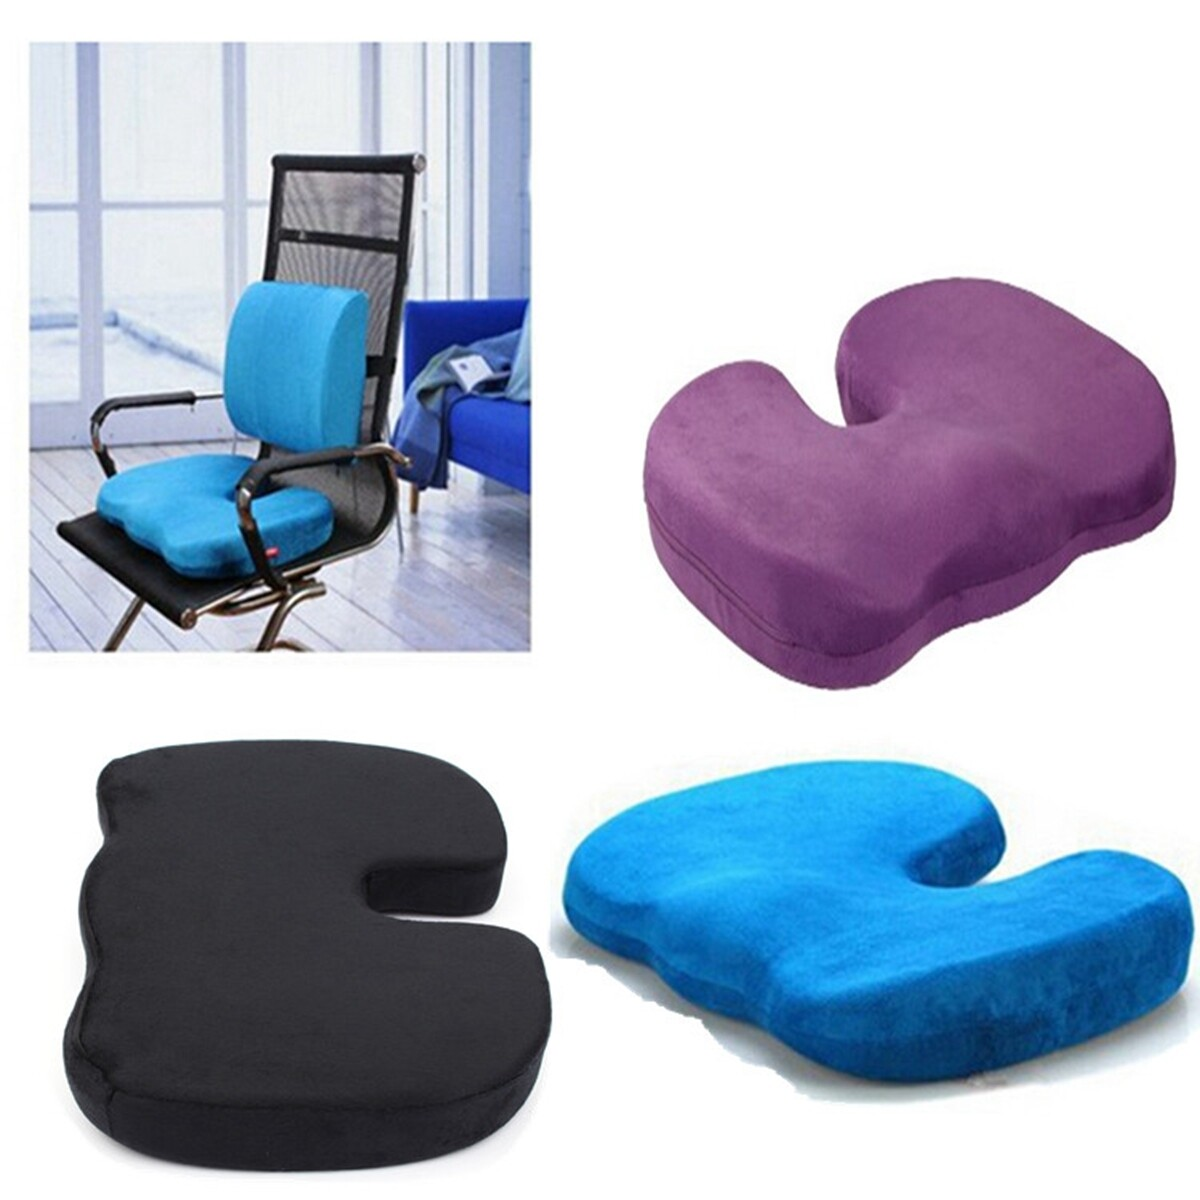 Seat Cushion For Office Chair Office Chair Orthopedic Seat Cushion Release Pillow Memory